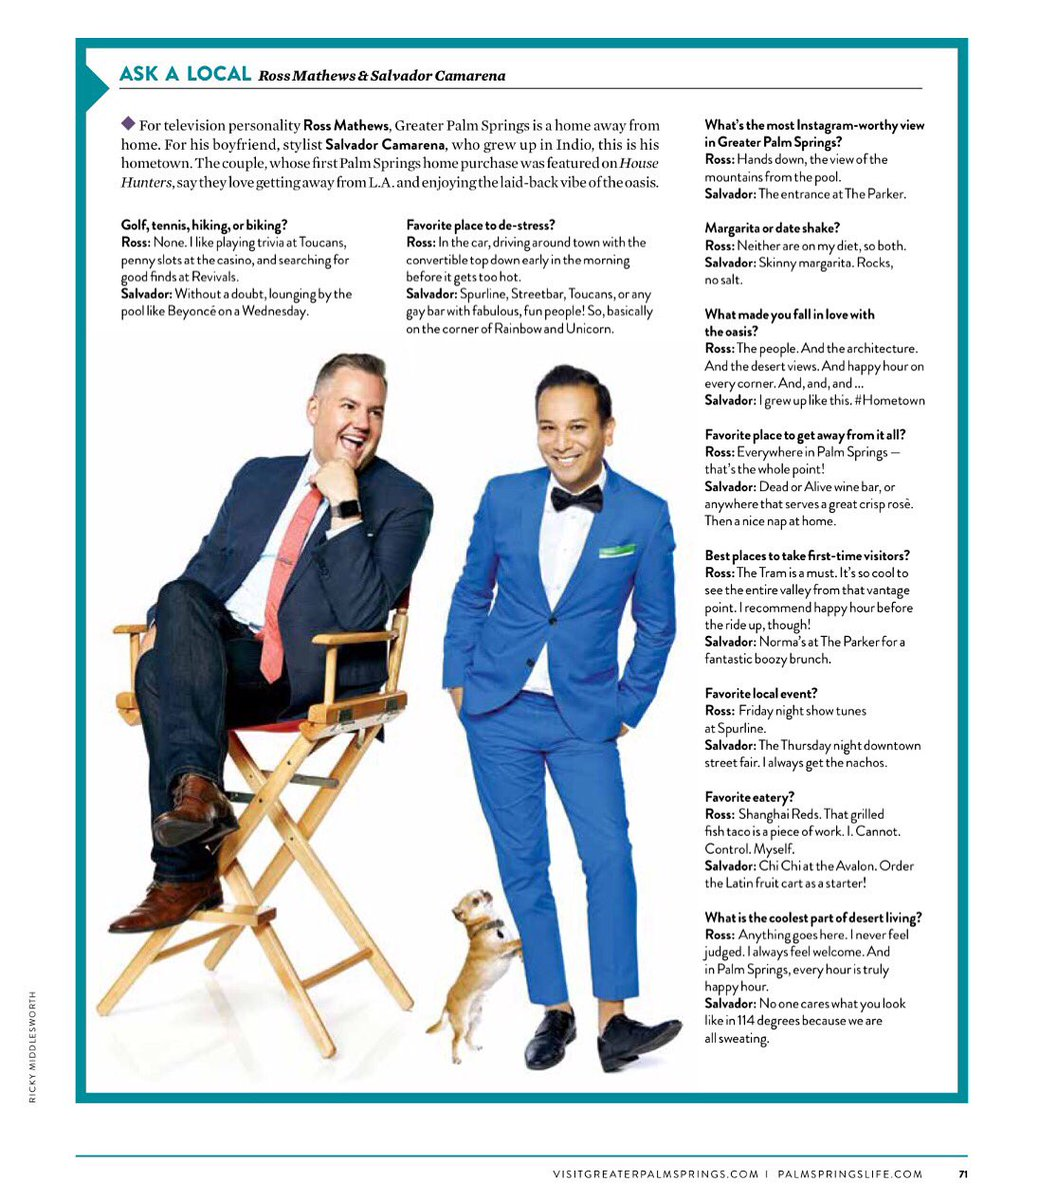 Ever wondered what we actually do in #PalmSprings? Our secrets are out in this months issue of @palmspringslife